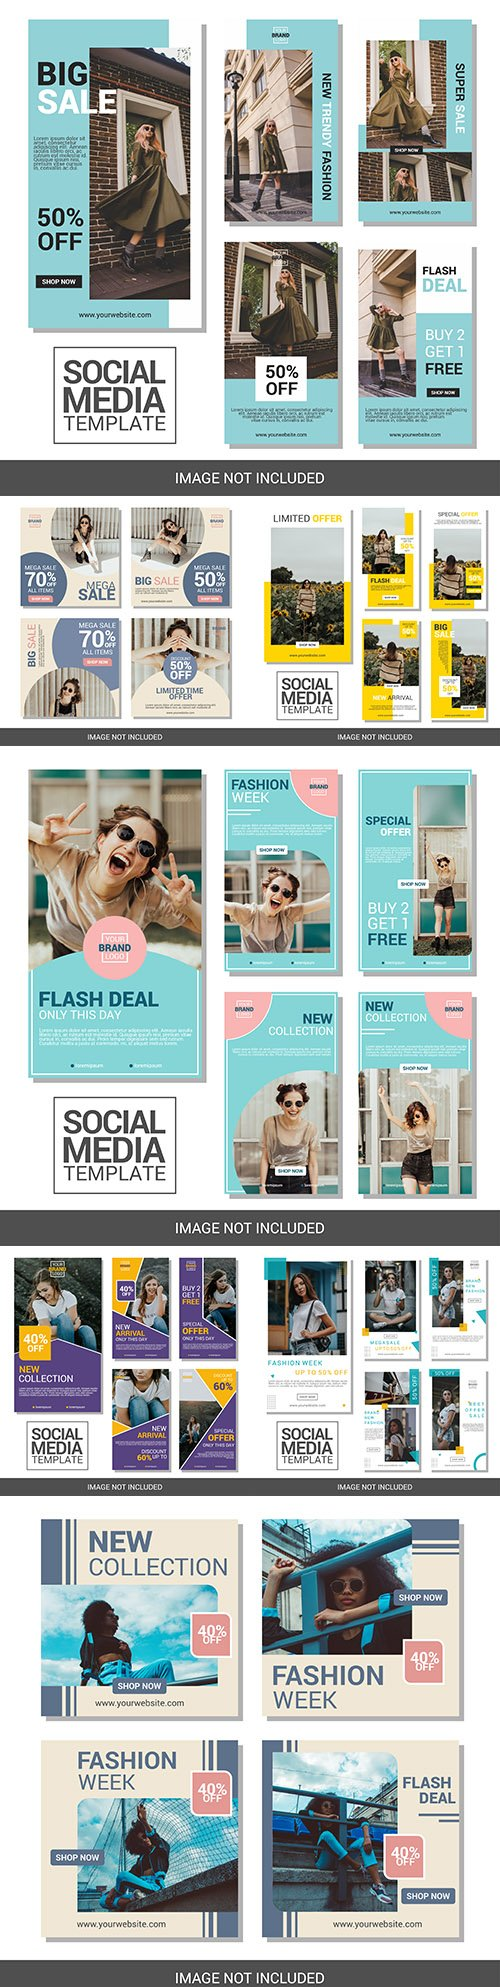 Social story collections instagram and banner design template